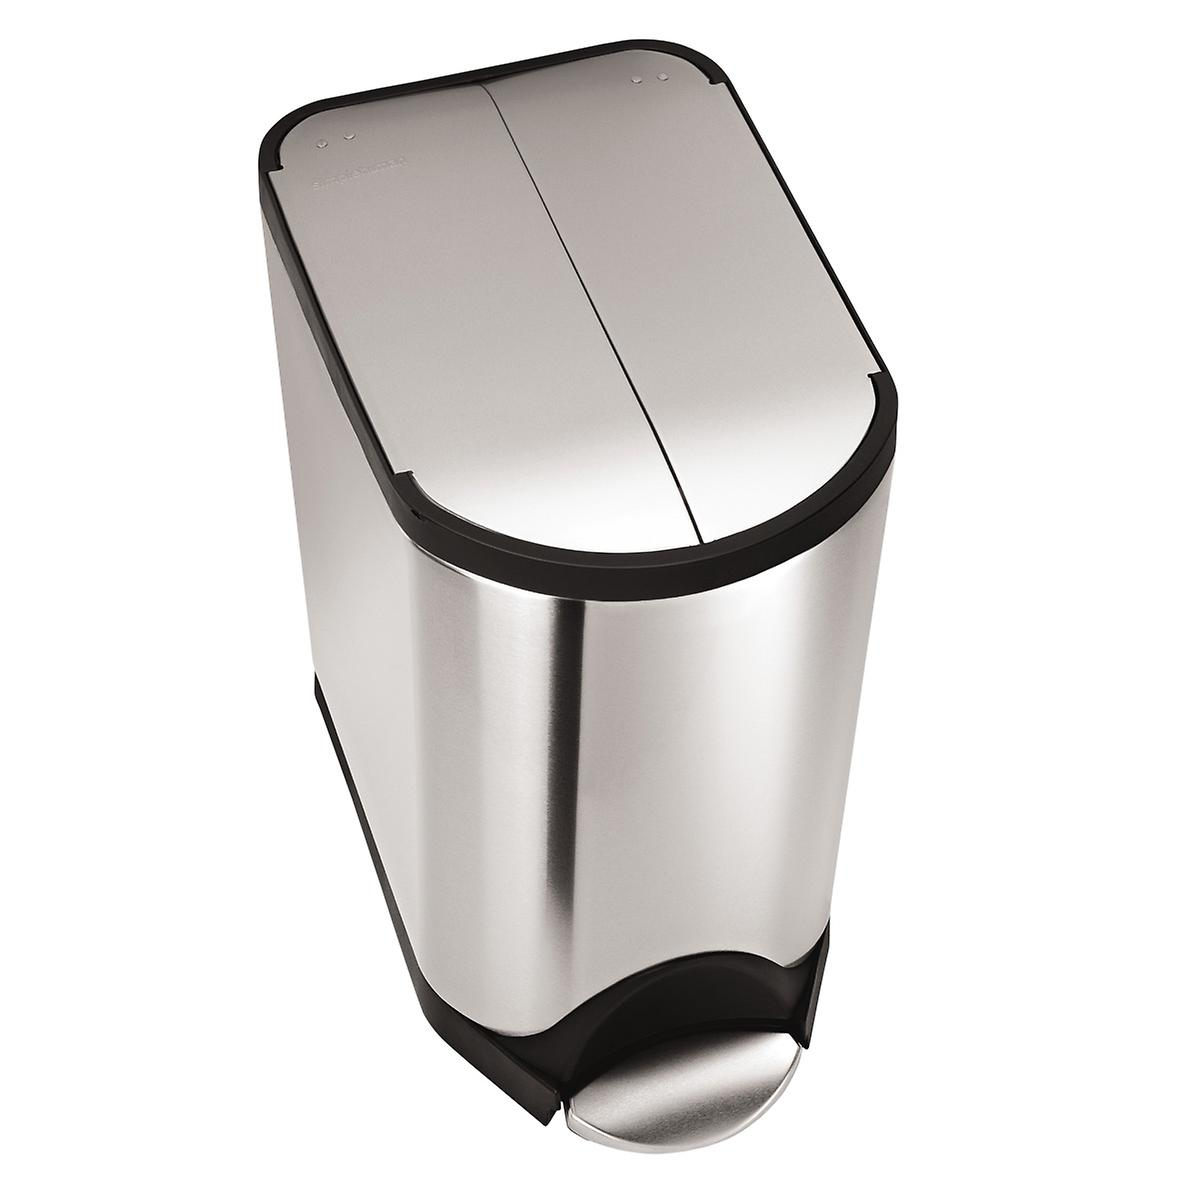 simplehuman Stainless Steel 5.2 gal. Butterfly Step Trash Can